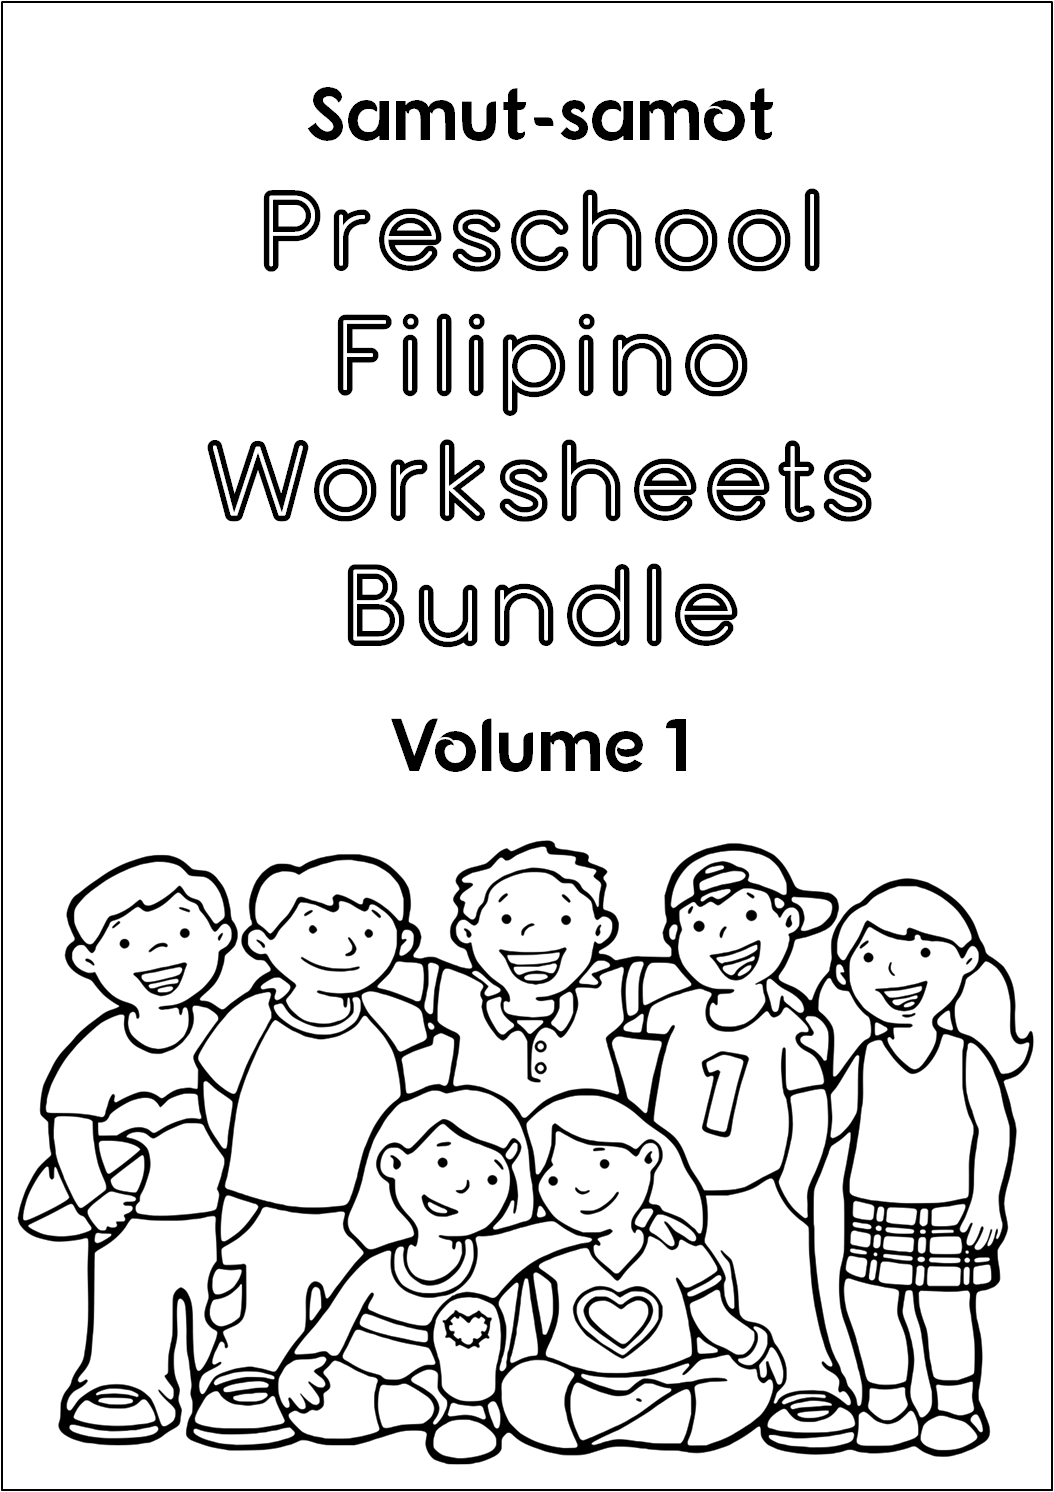 hight resolution of Preschool Filipino Worksheets Bundle Vol. 1 - Samut-samot